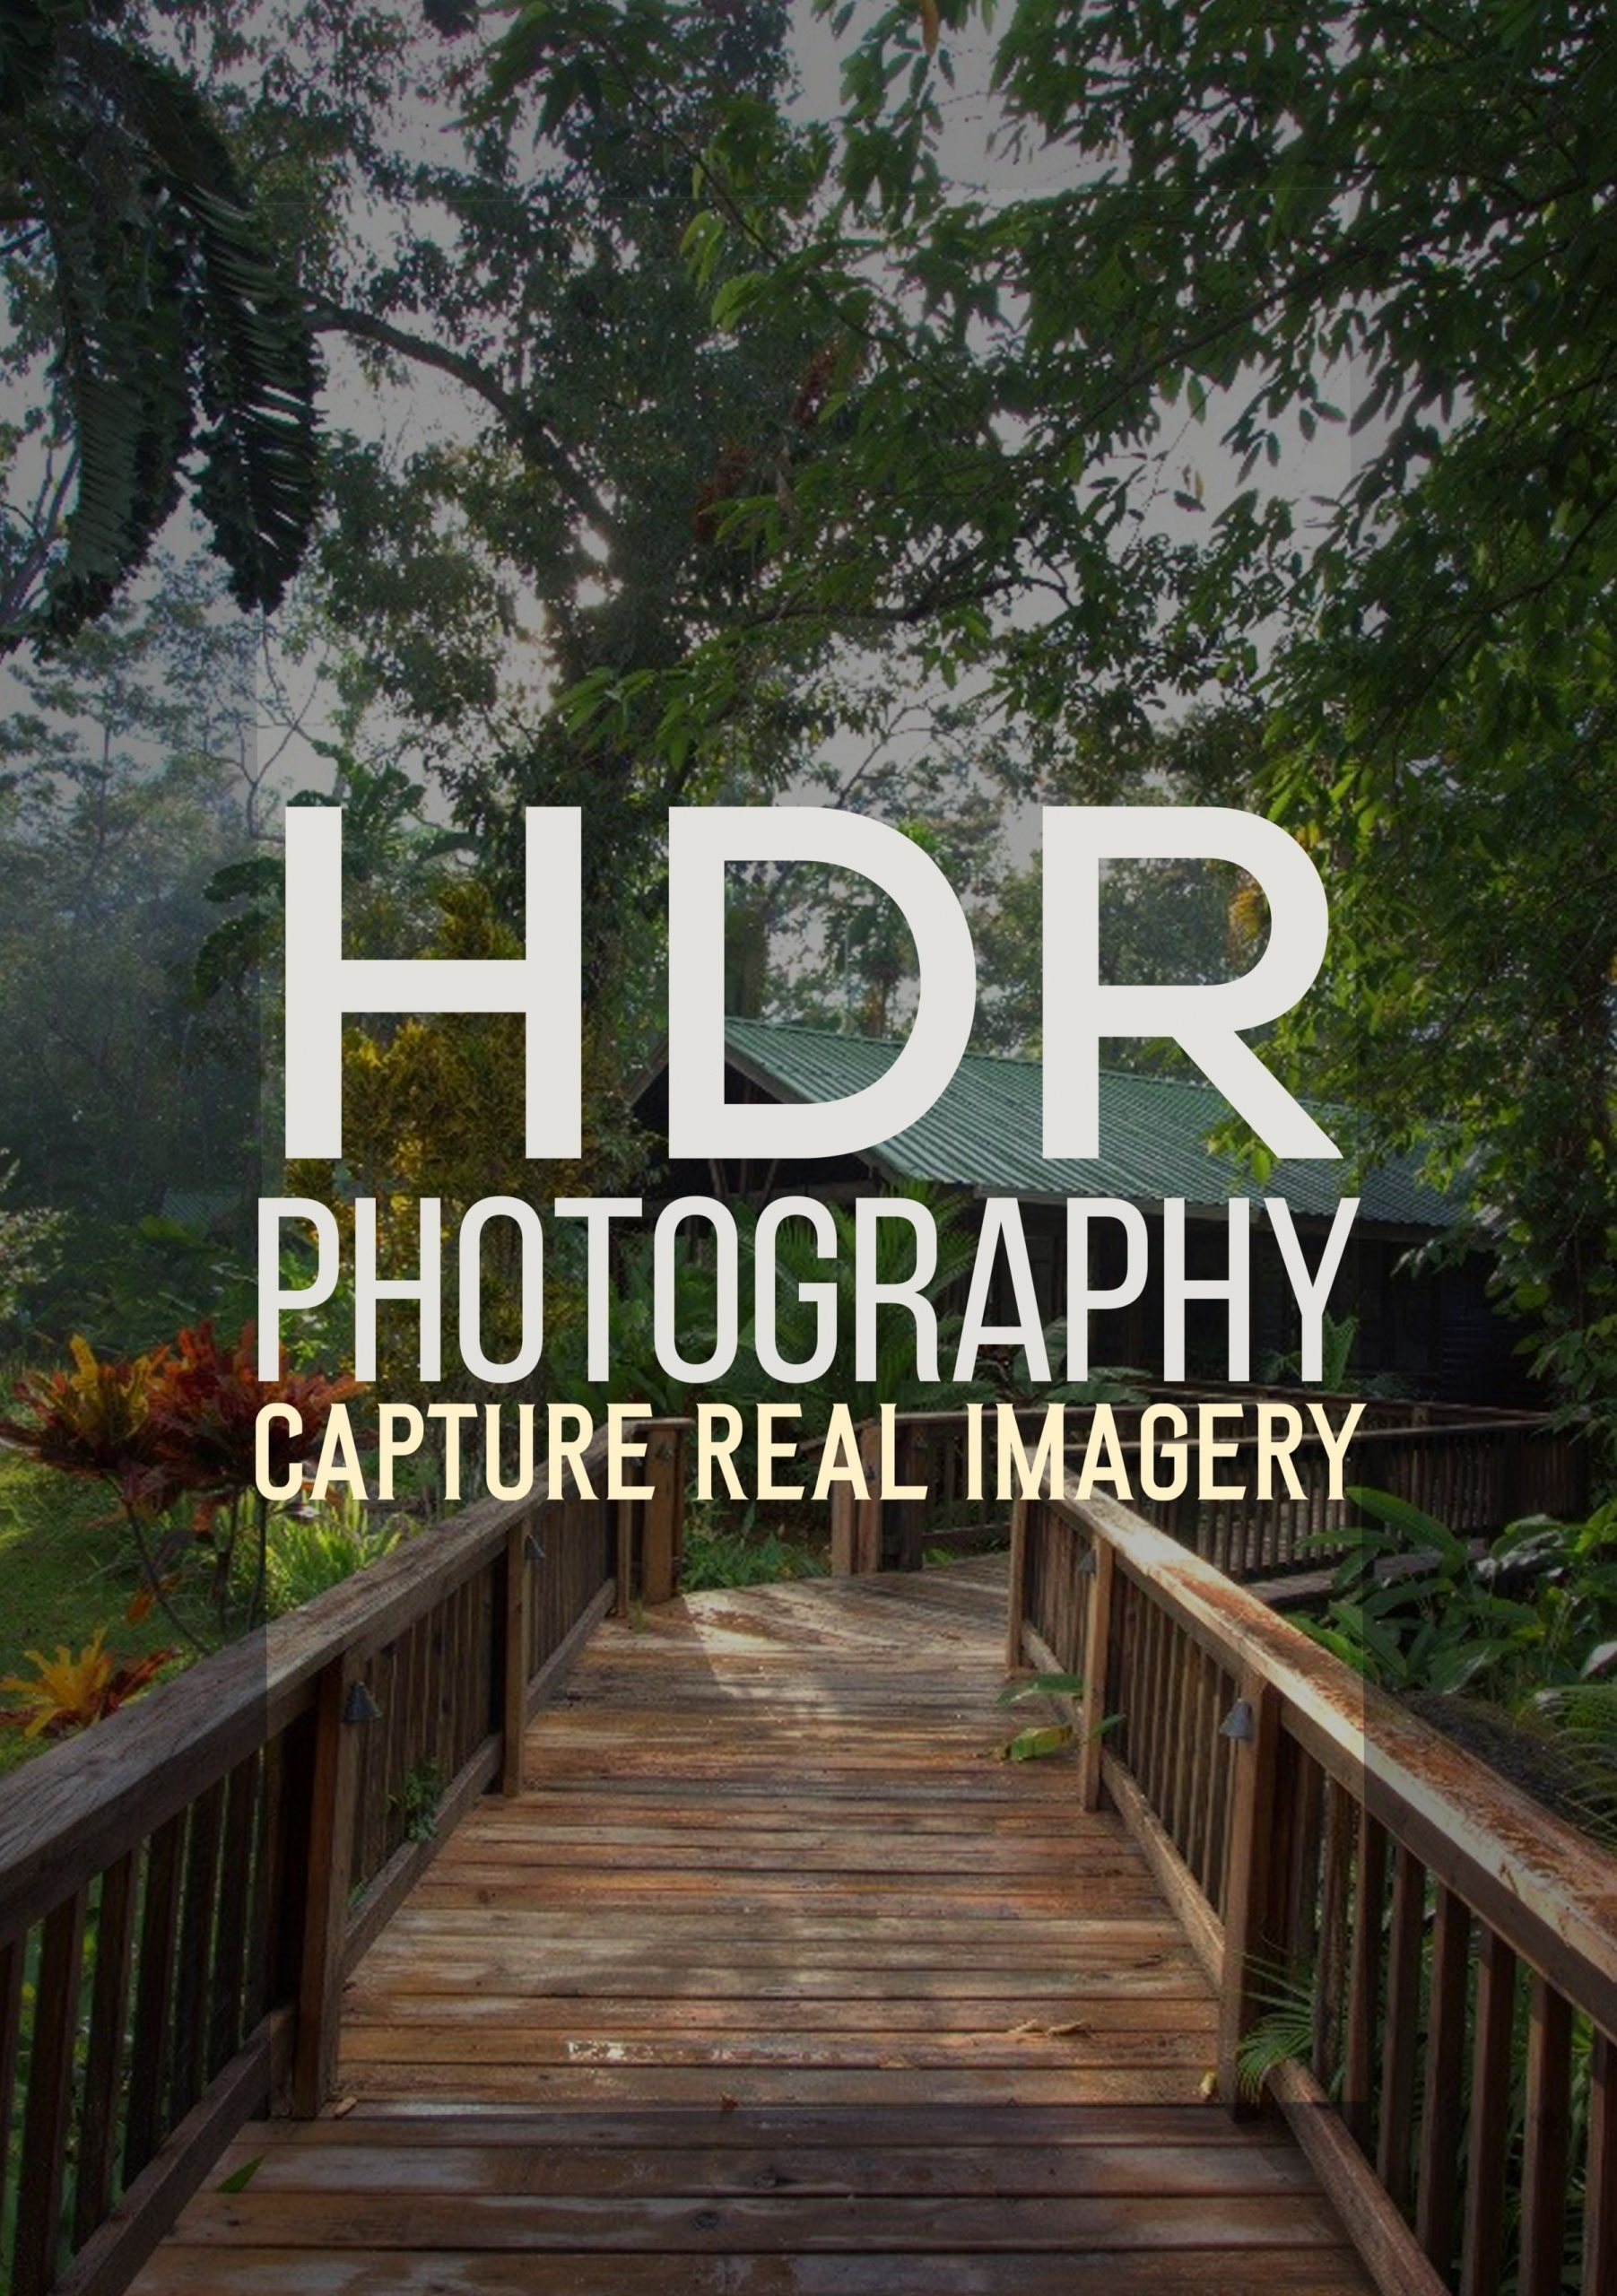 HDR Photography (1) (1) (1)